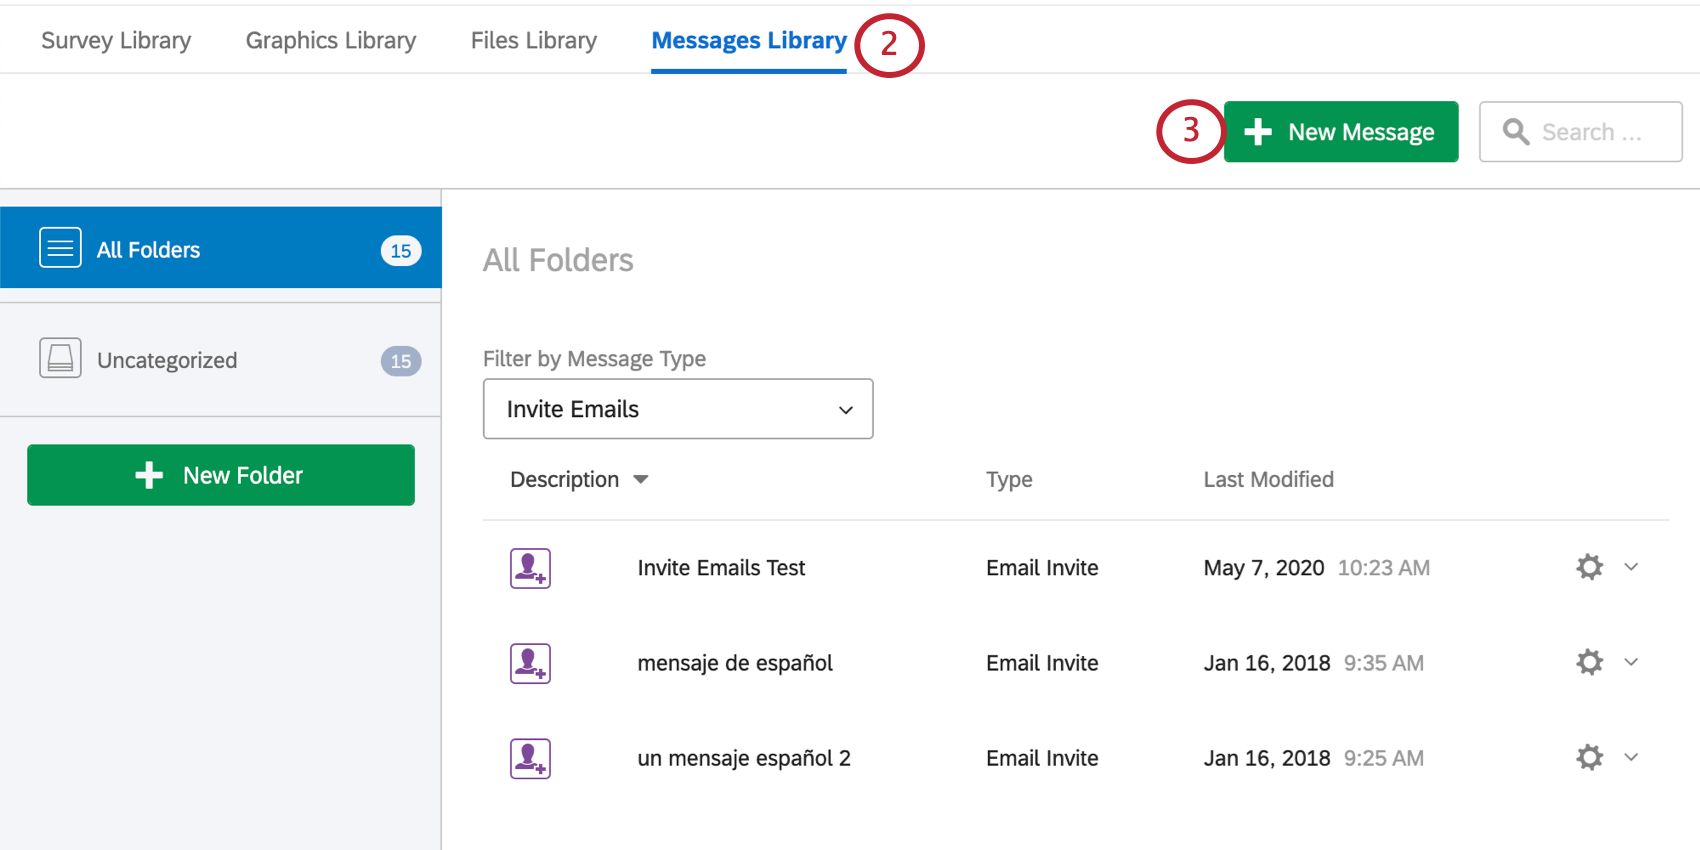 Messages library, new message button on right